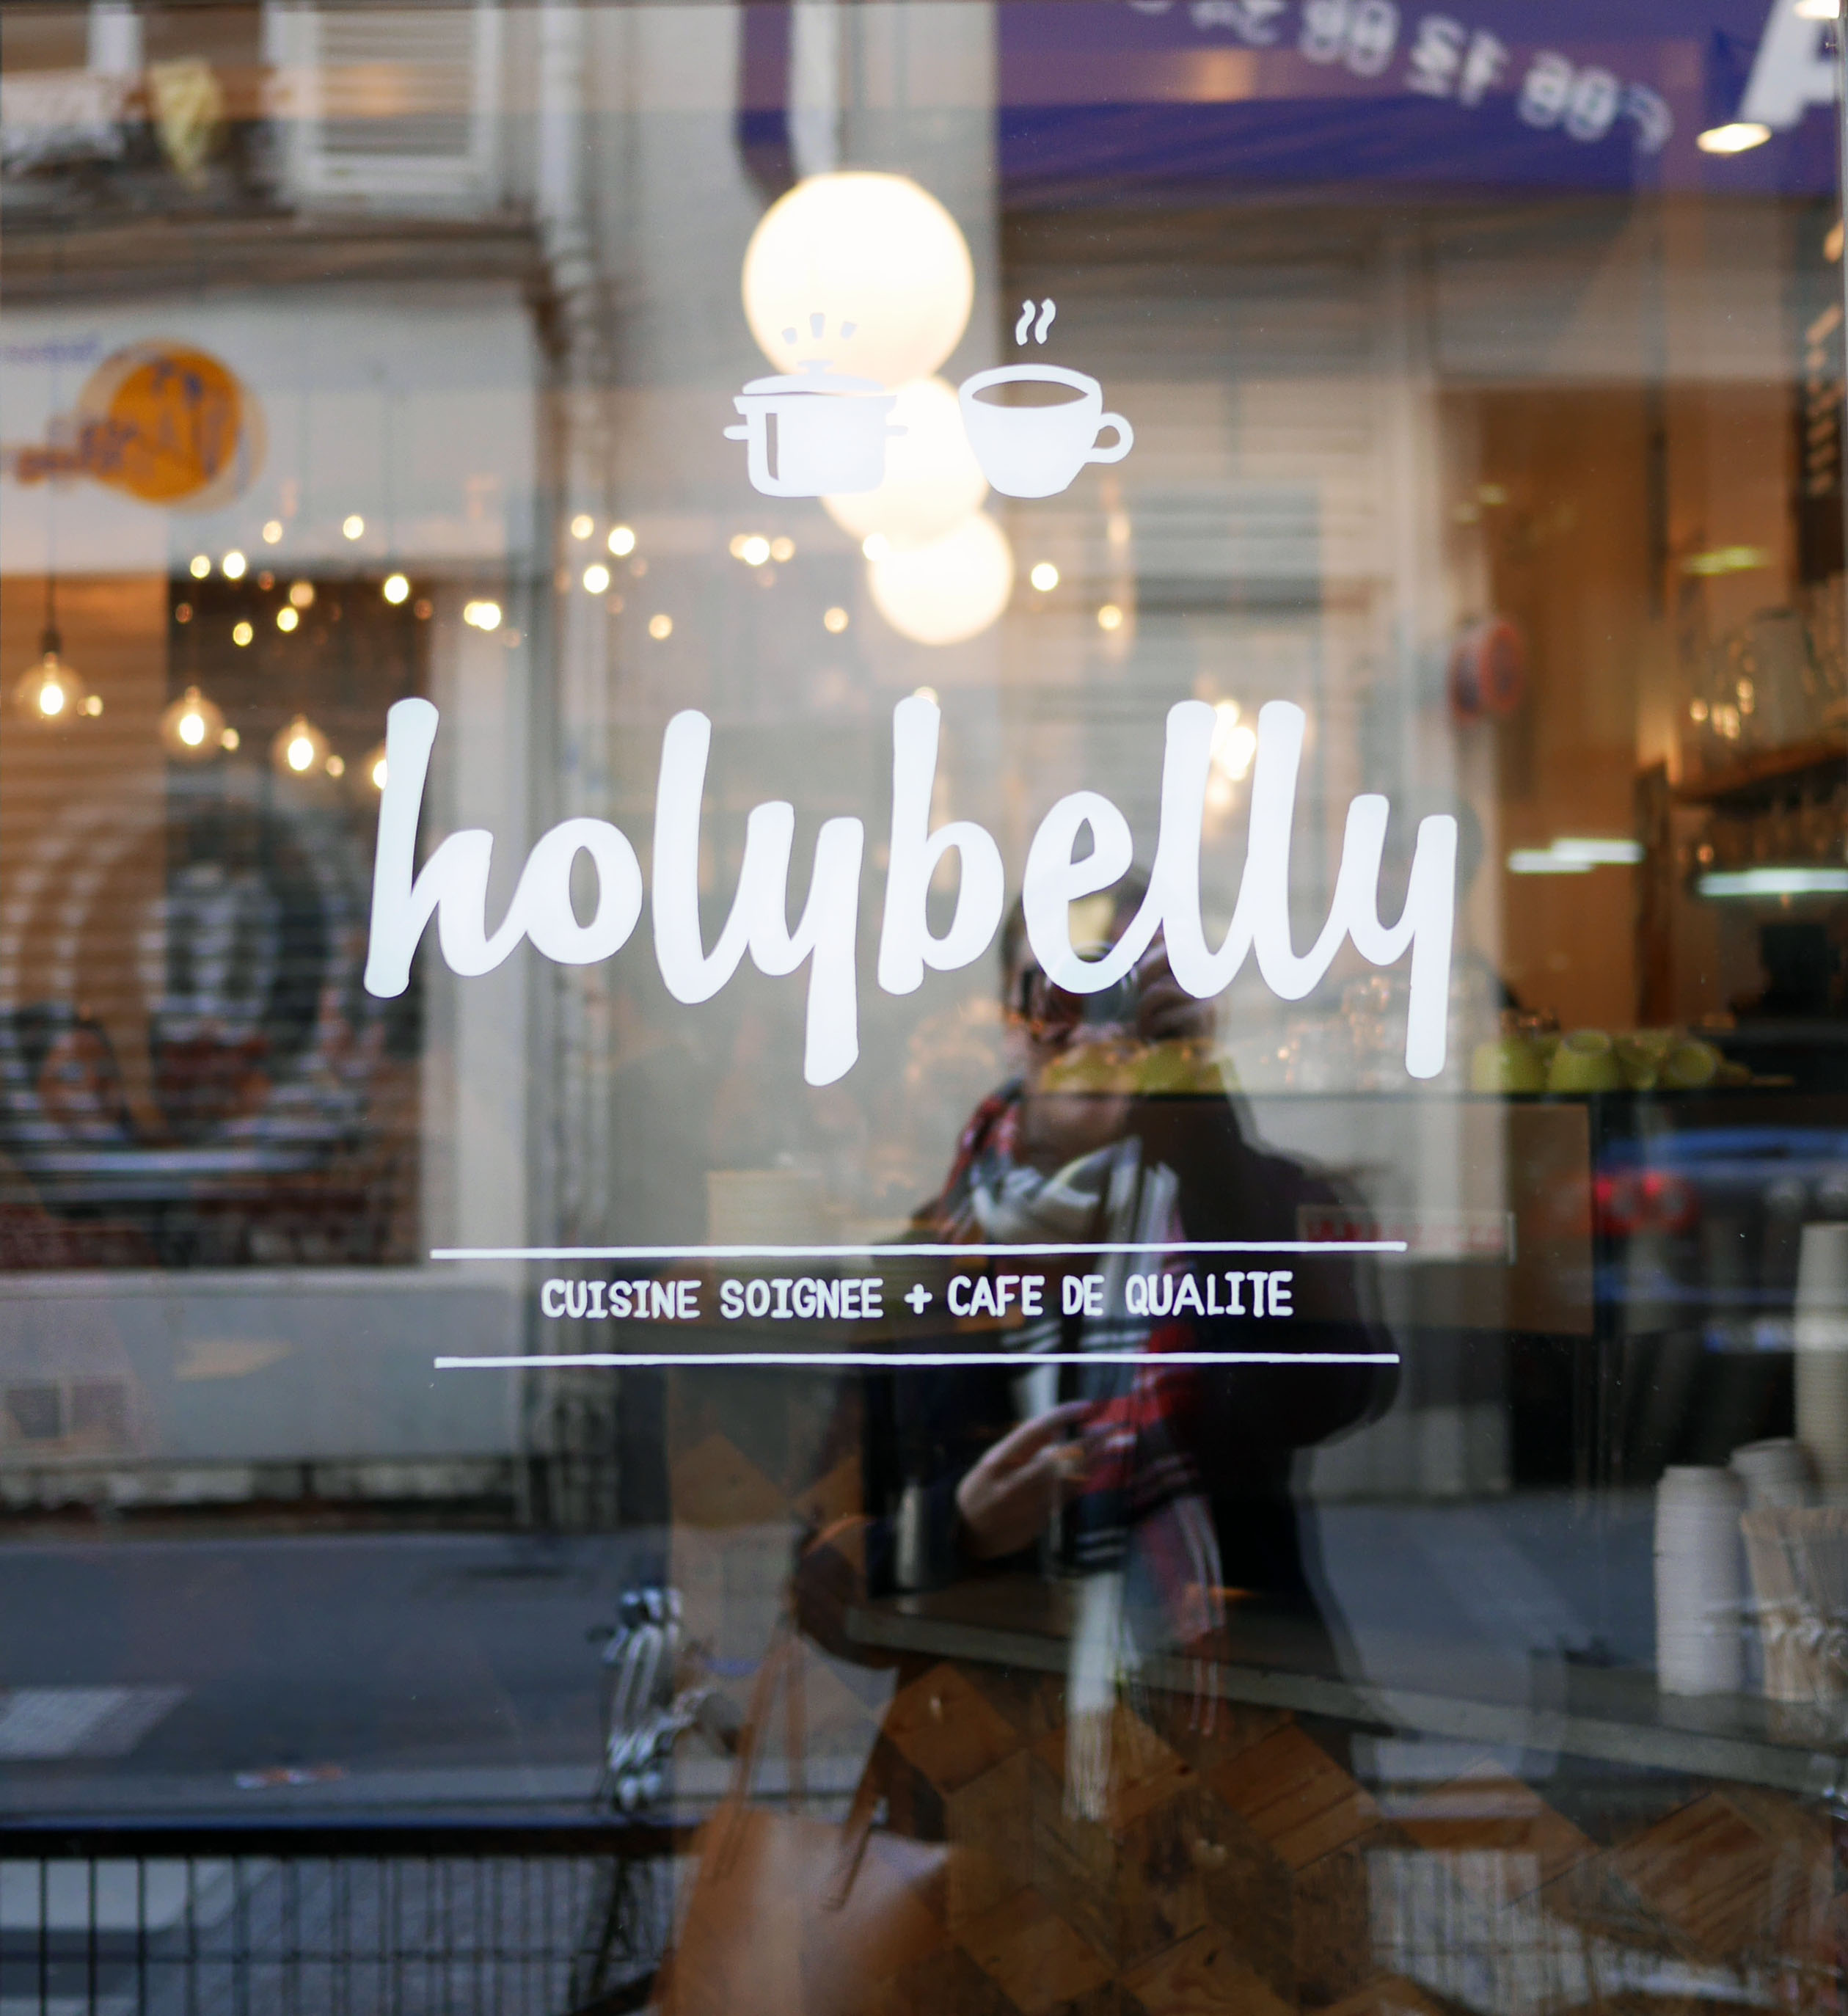 Breakfast in Paris - Holybelly